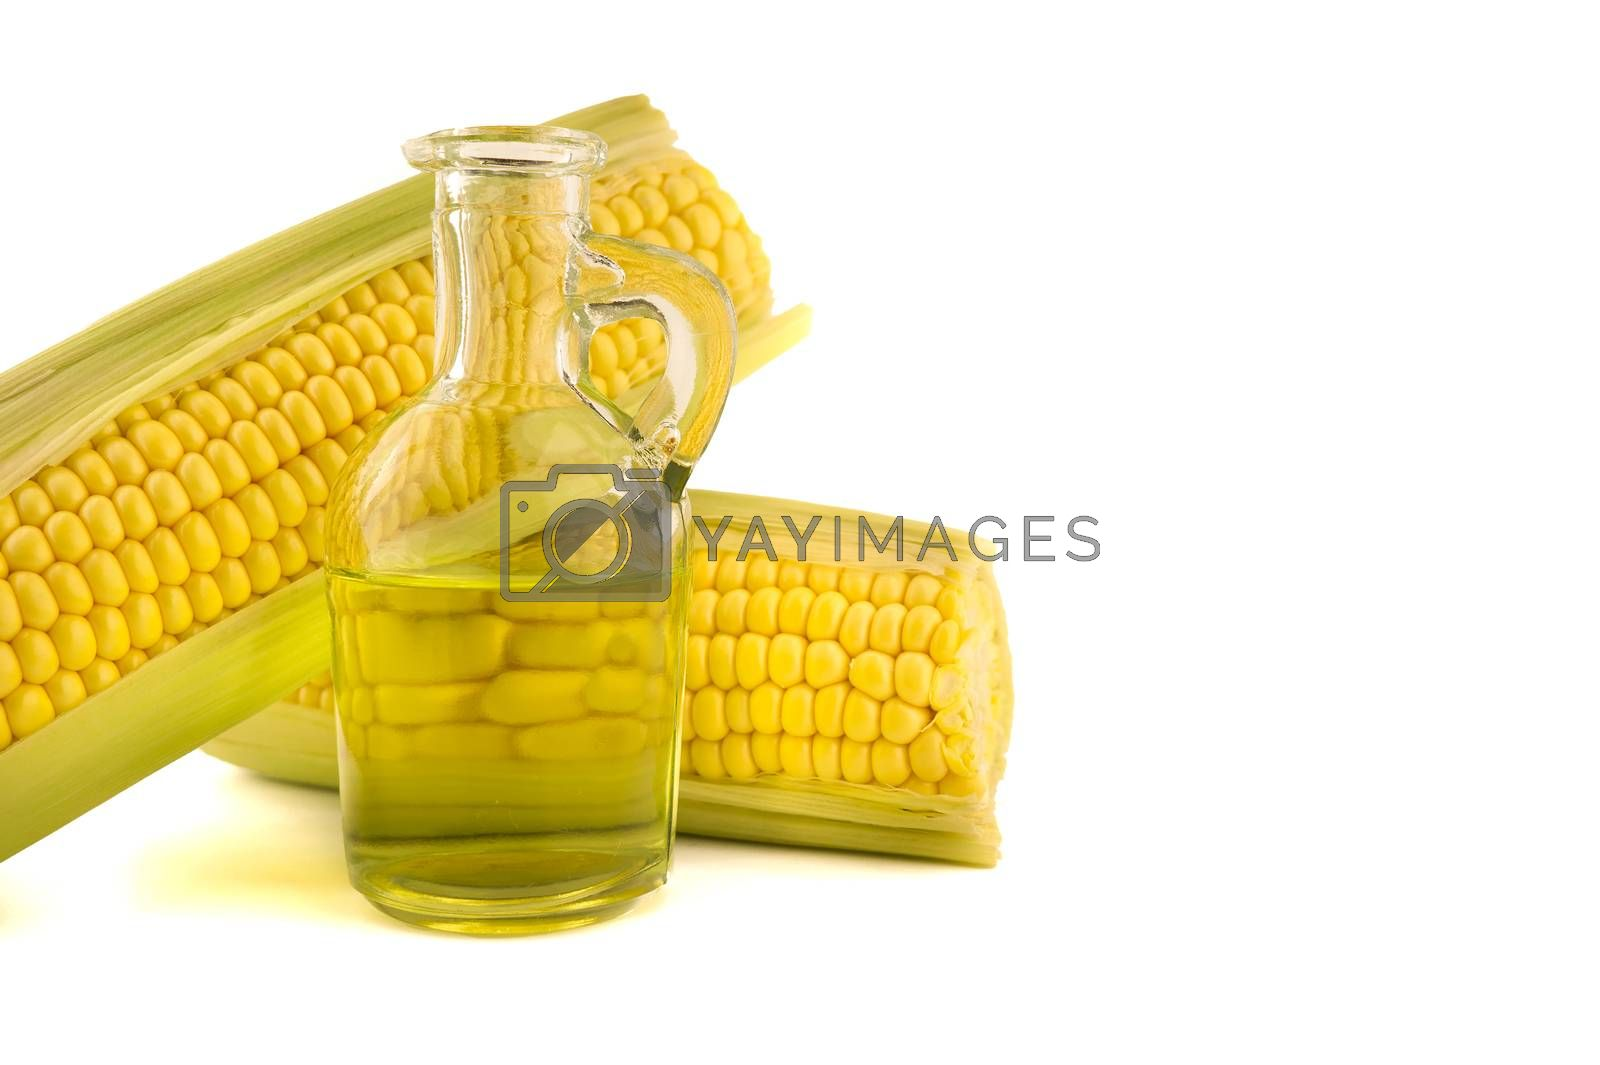 Corn oil in decanter and fresh corncobs isolated on white background with free copy space for text